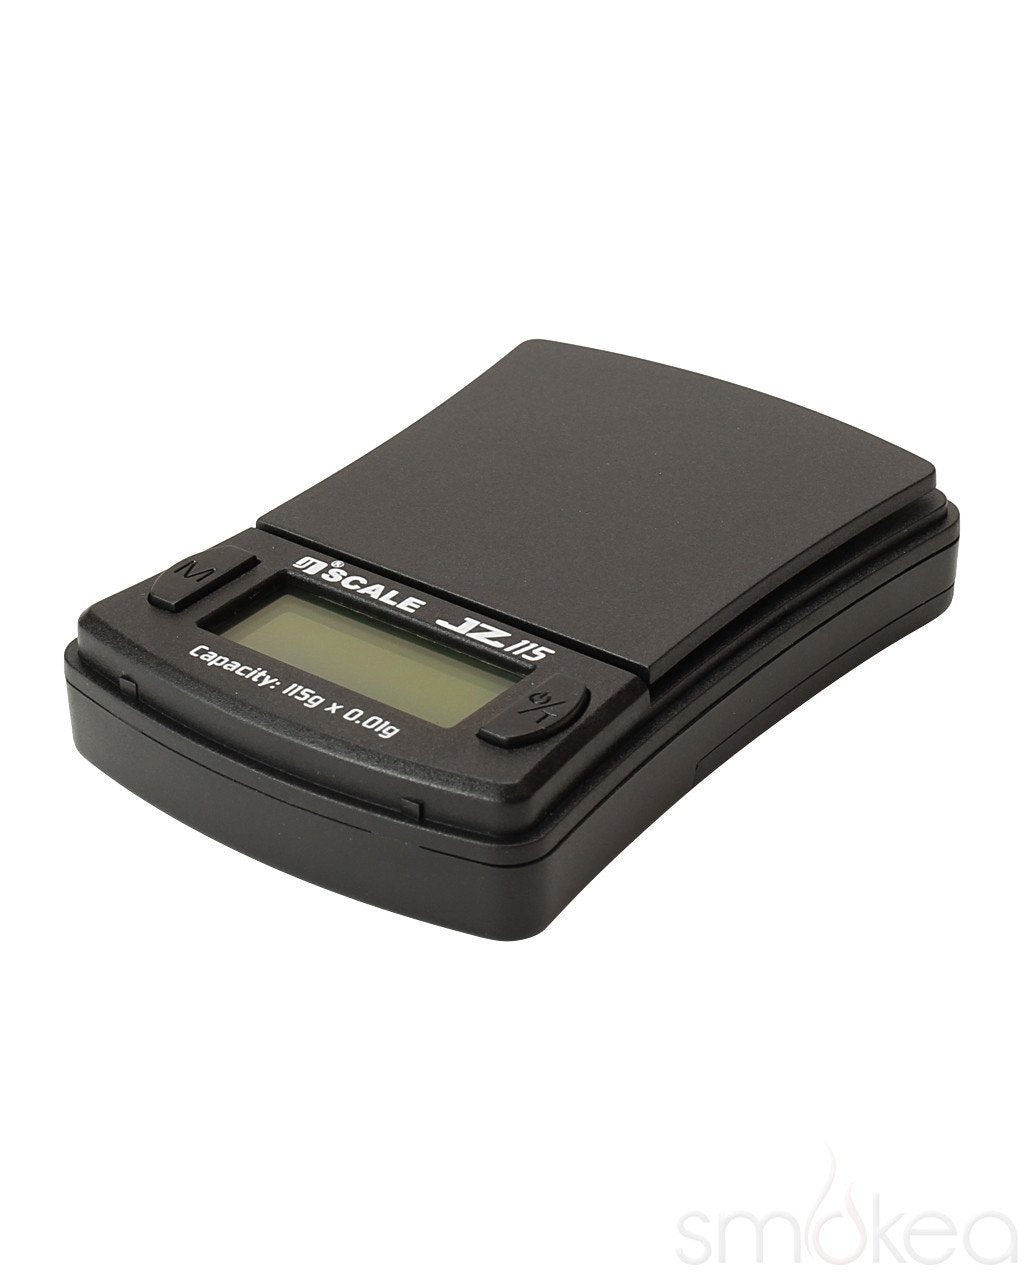 Jennings JZ115 Digital Pocket Scale